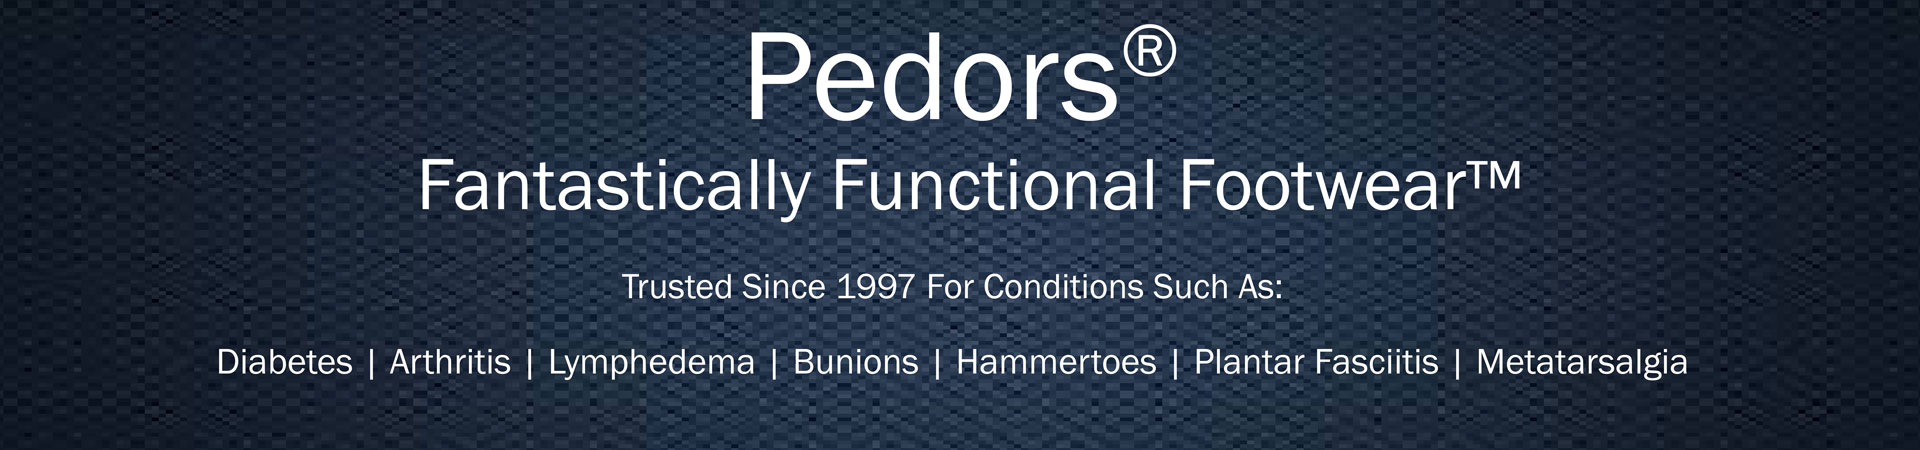 Pedors Fantastically Functional Footwear Since 1997